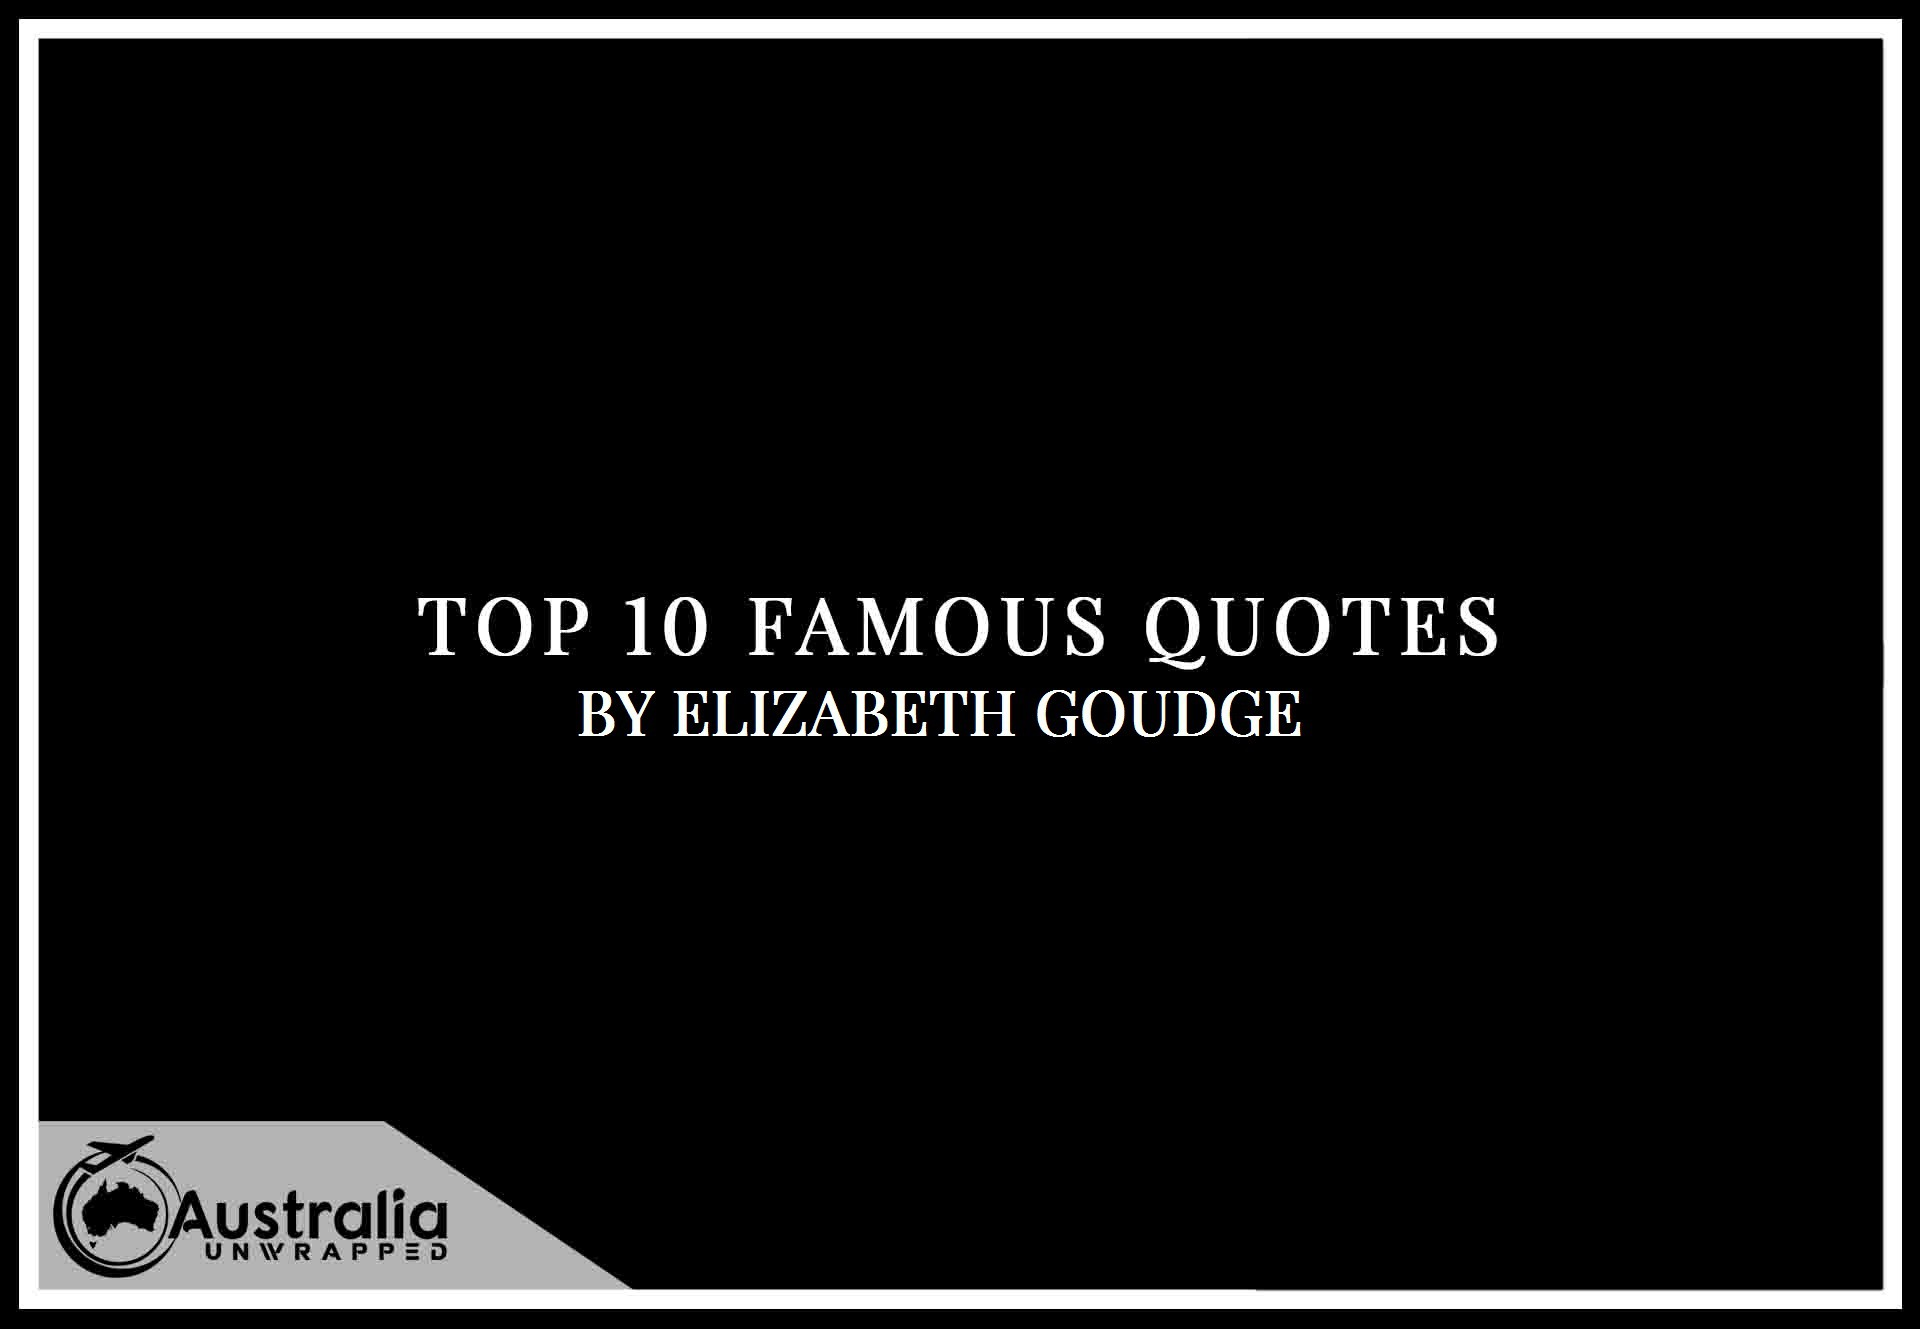 Elizabeth Goudge's Top 10 Popular and Famous Quotes